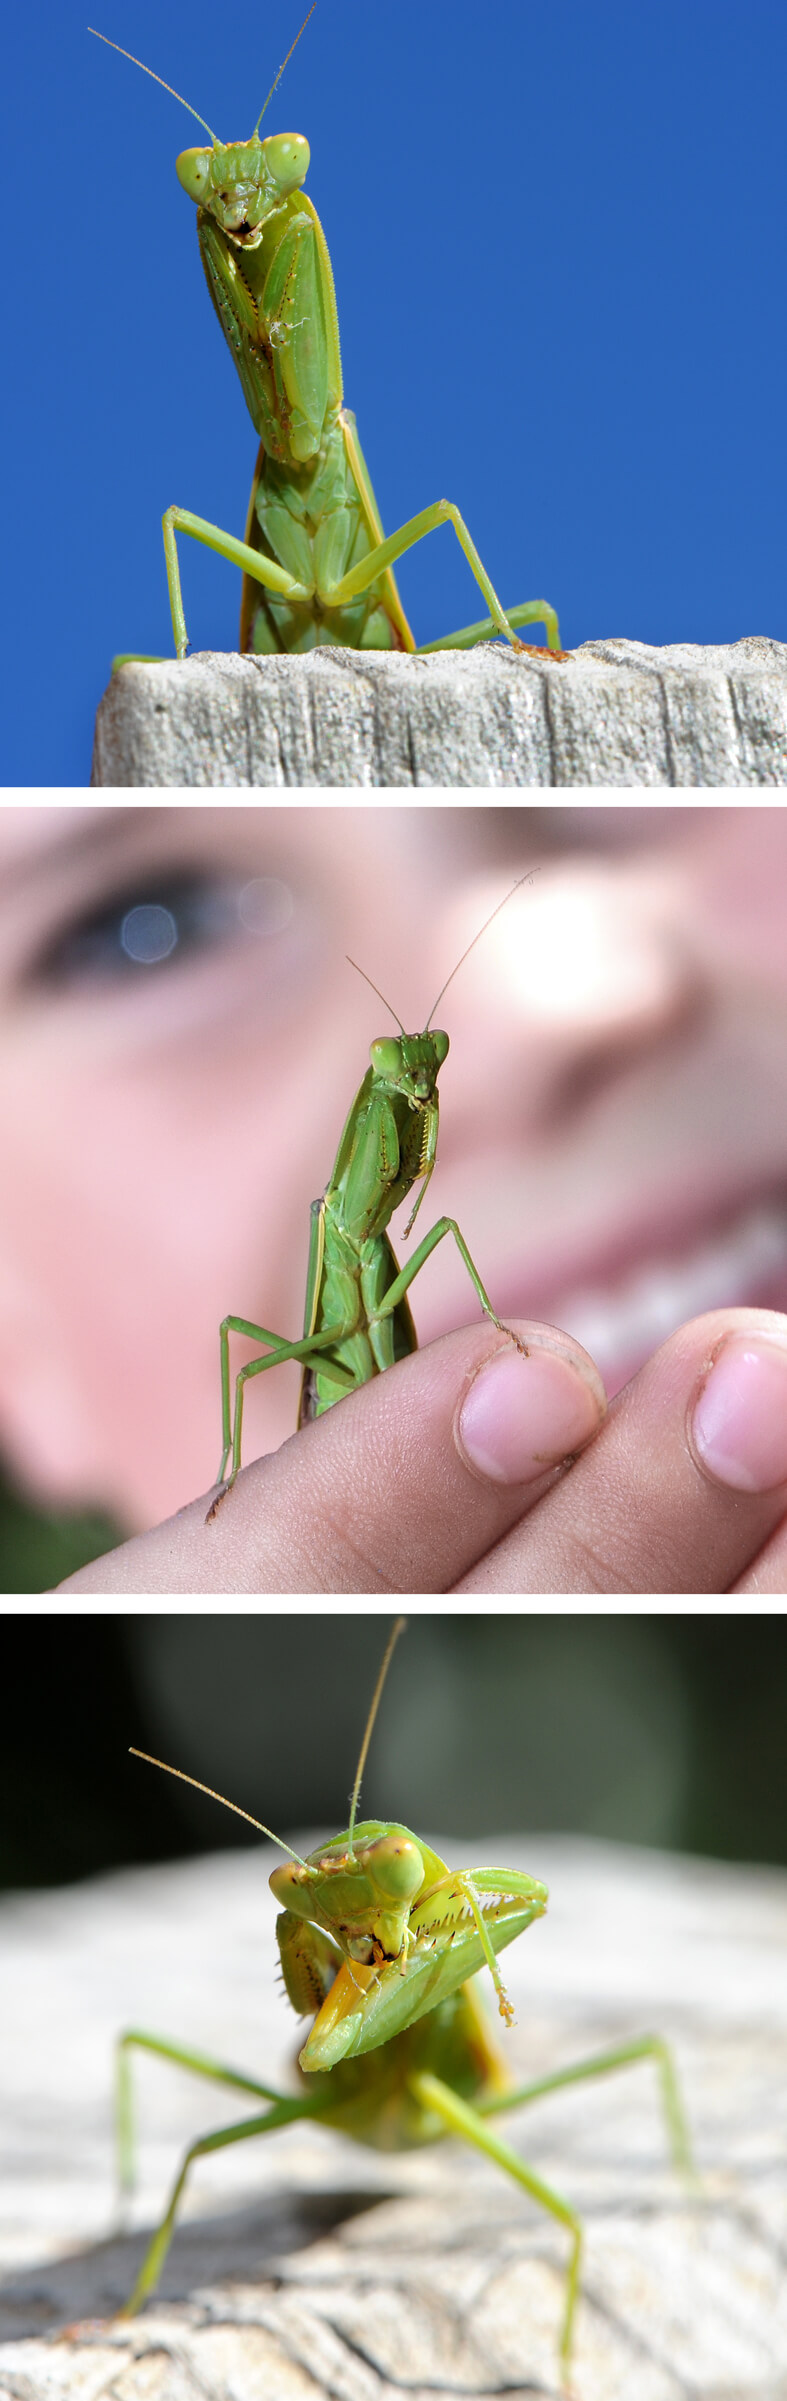 Praying Mantis blog